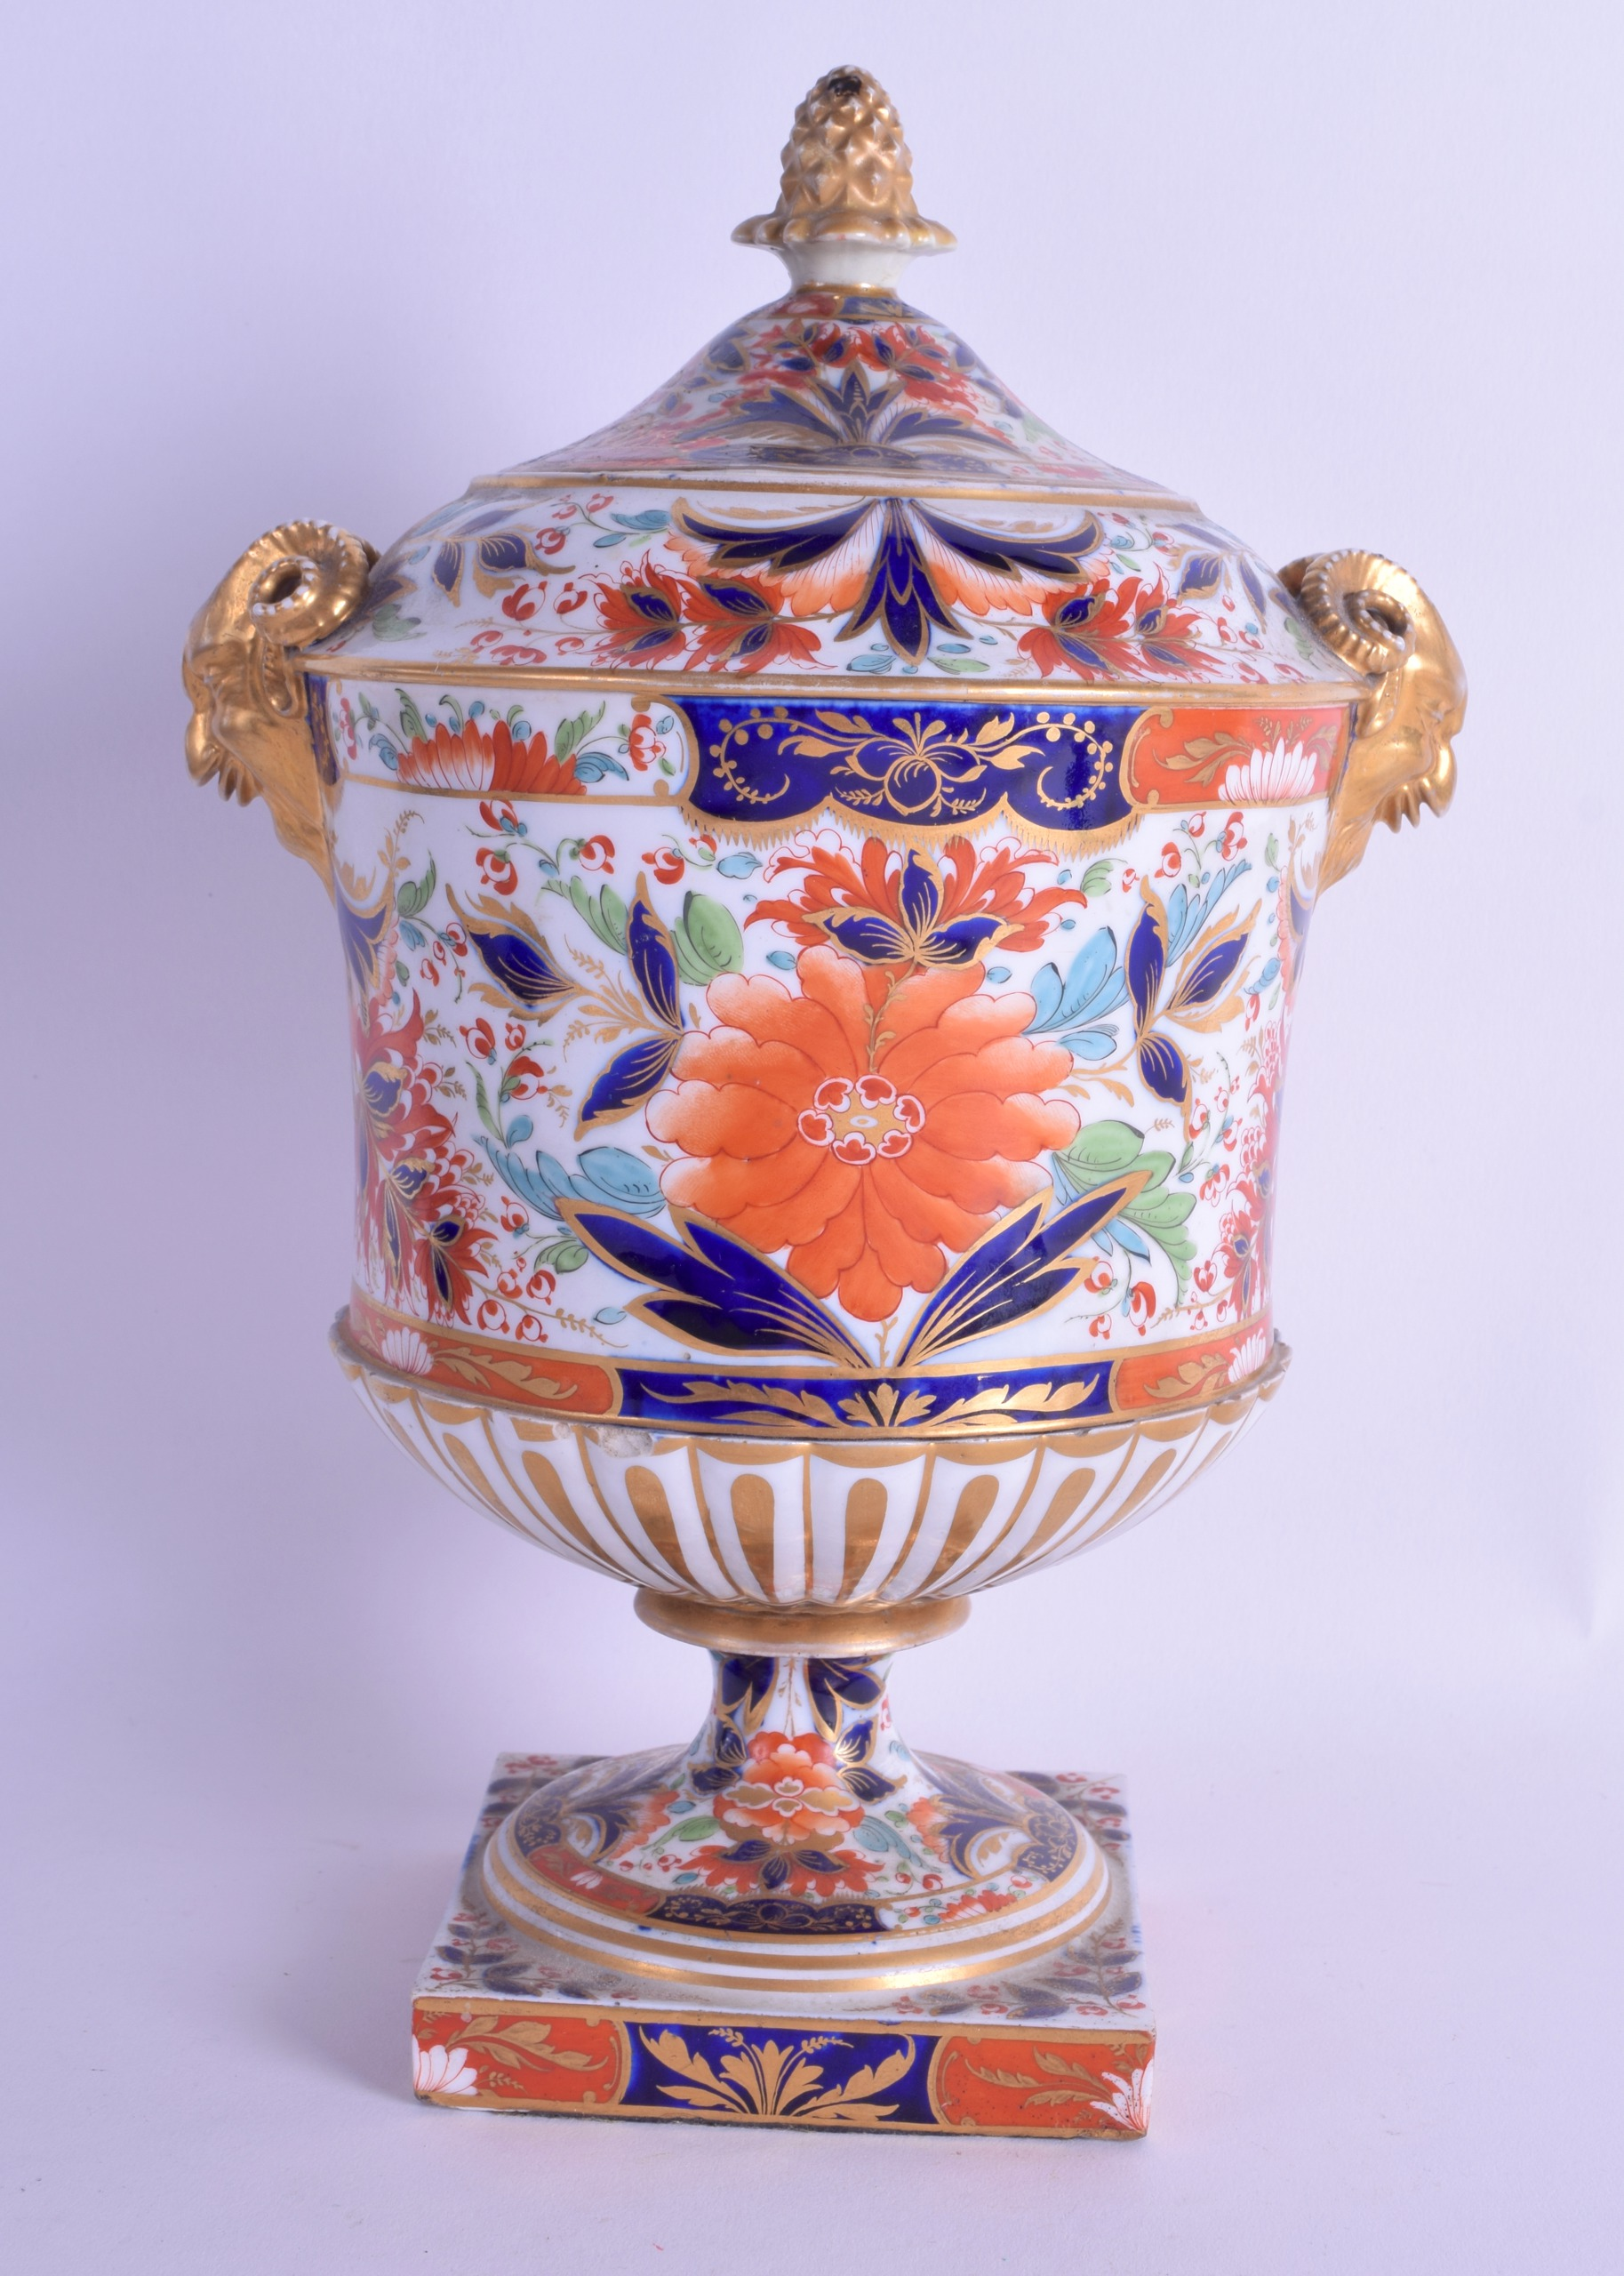 Lot 134 - Early 19th c. Chamberlain Worcester large and impressive vase and cover in imari palette. 28cm high